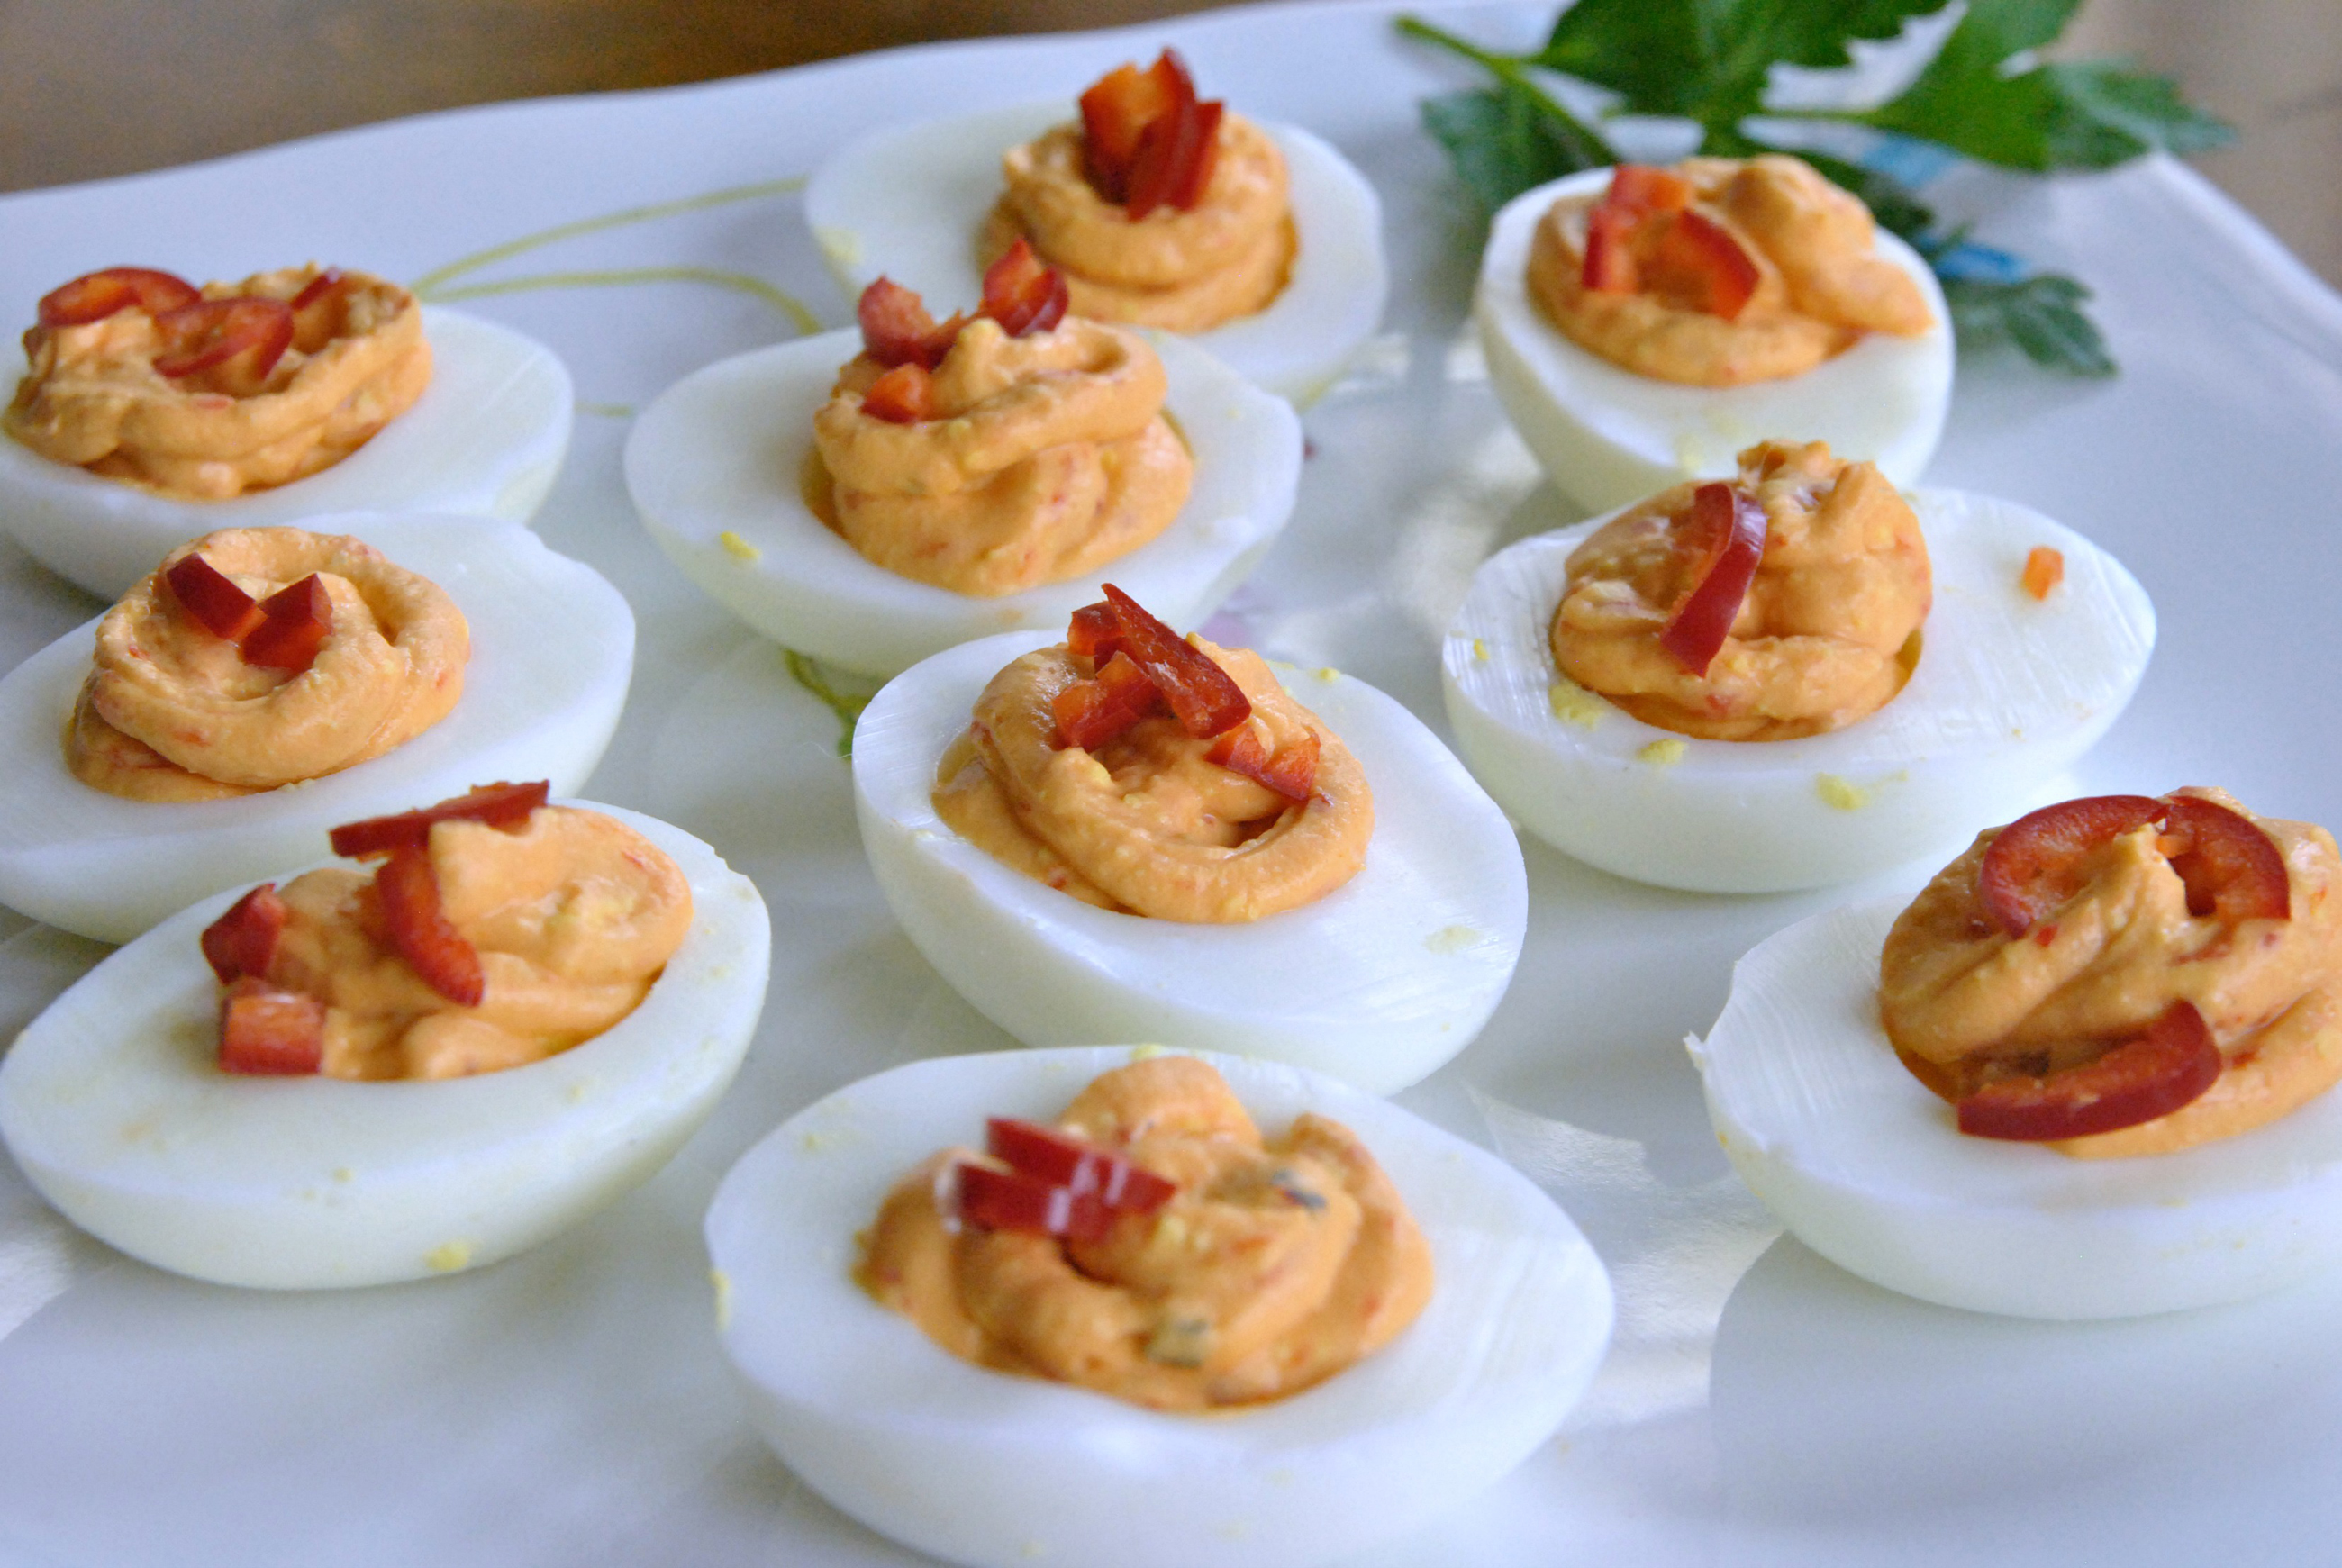 Deviled eggs with a twist | Pittsburgh Post-Gazette